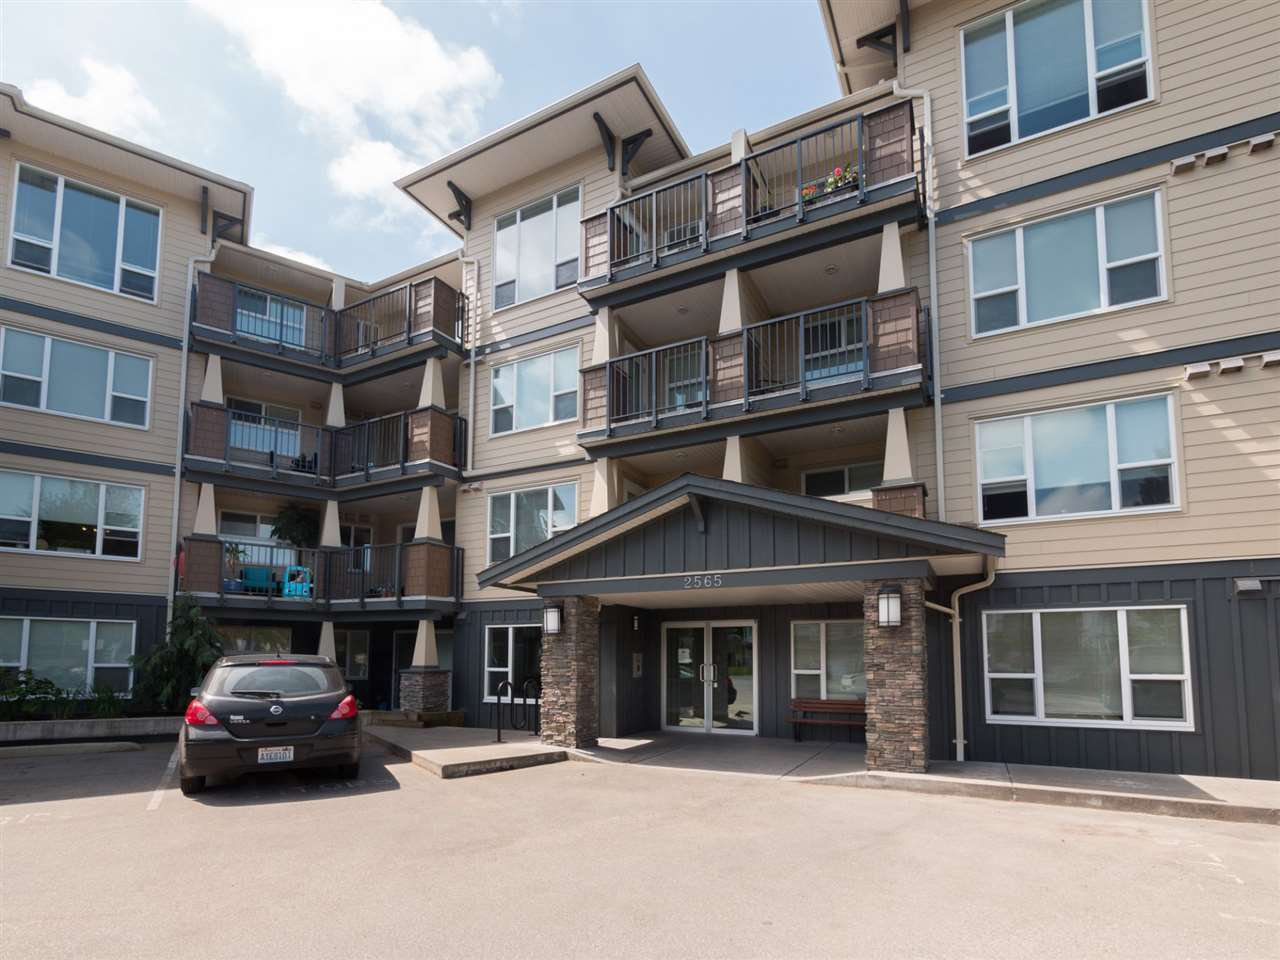 """Main Photo: 421 2565 CAMPBELL Avenue in Abbotsford: Central Abbotsford Condo for sale in """"Abacus"""" : MLS®# R2266079"""